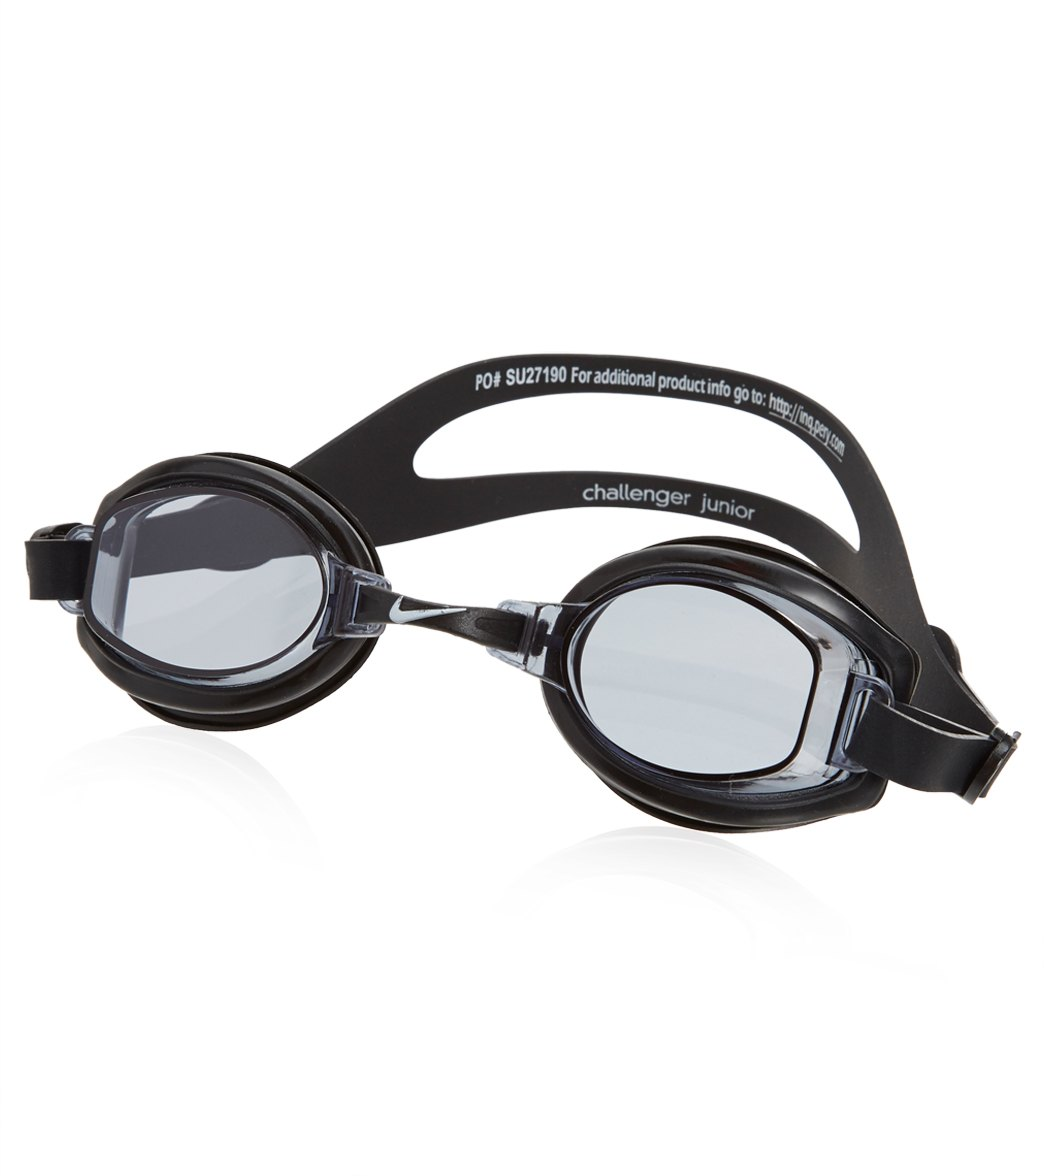 17a024ba941a Nike Challenger Youth Swim Goggle at SwimOutlet.com